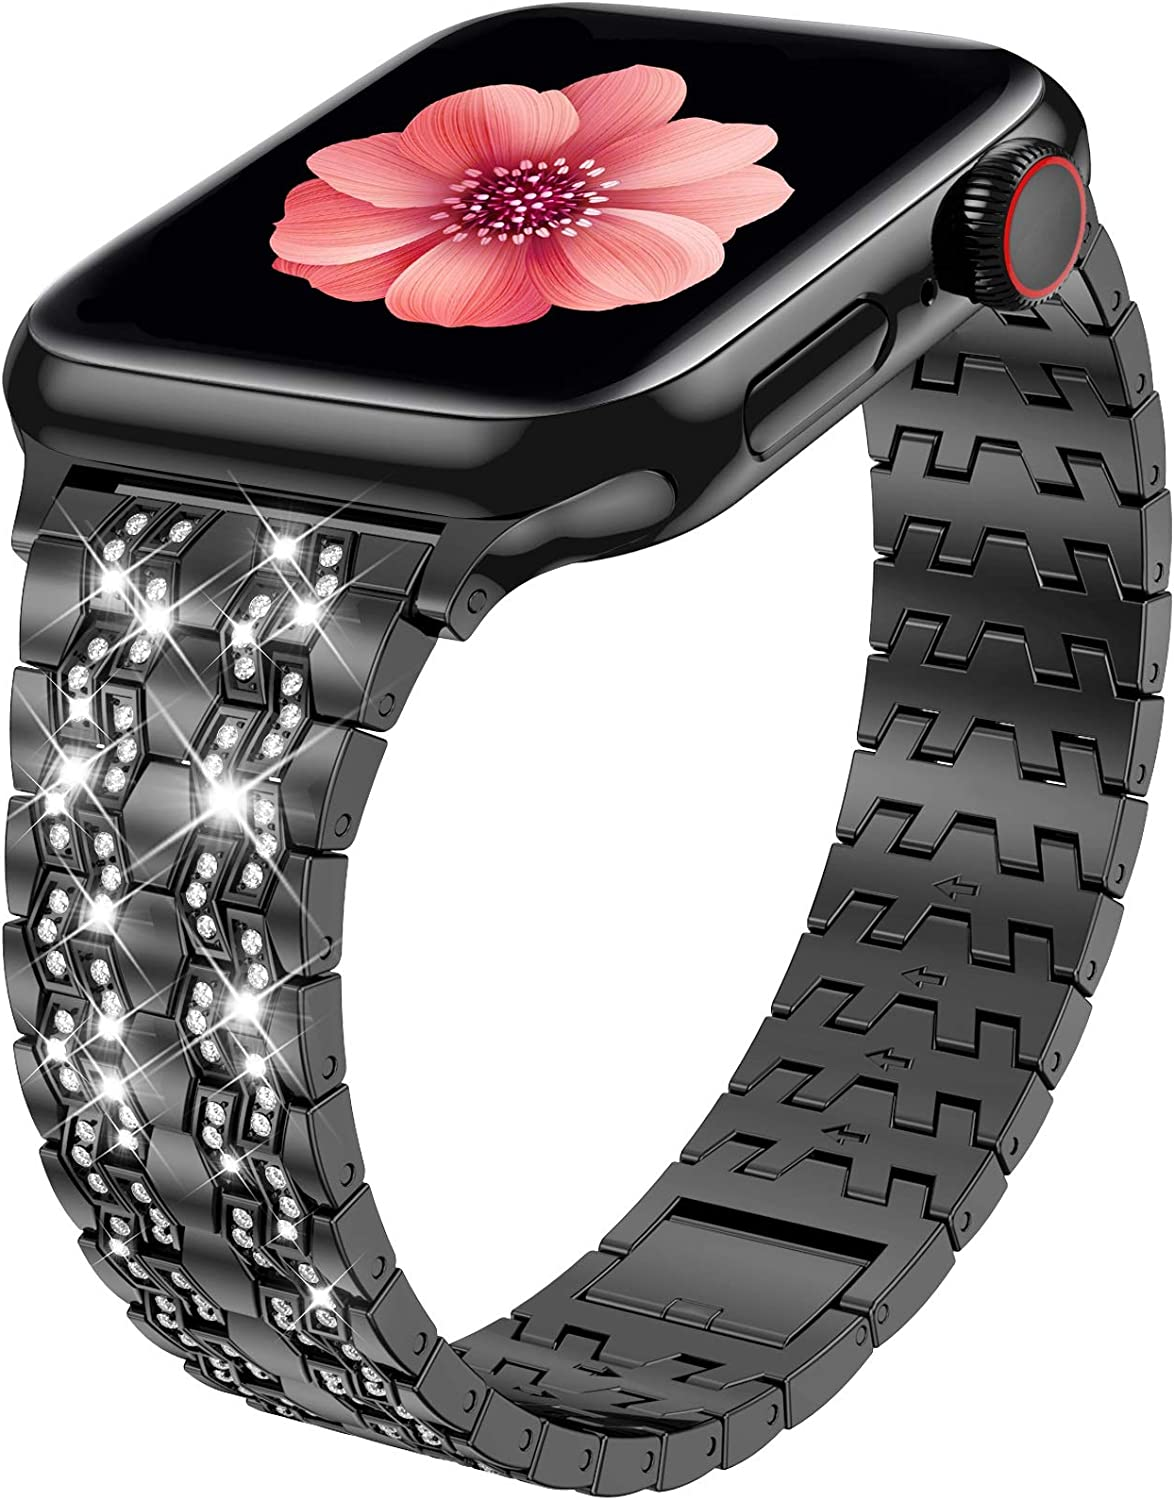 Fitlink Compatible with Apple Watch Band 38mm 40mm 42mm 44mm Series 6 Series 5 4 3 2 1 SE, Bling Dressy Jewelry Metal Adjustable Apple Watch Bands for Apple Watch 6/5/4/3/2/1 (Glossy Black, 42/44mm)